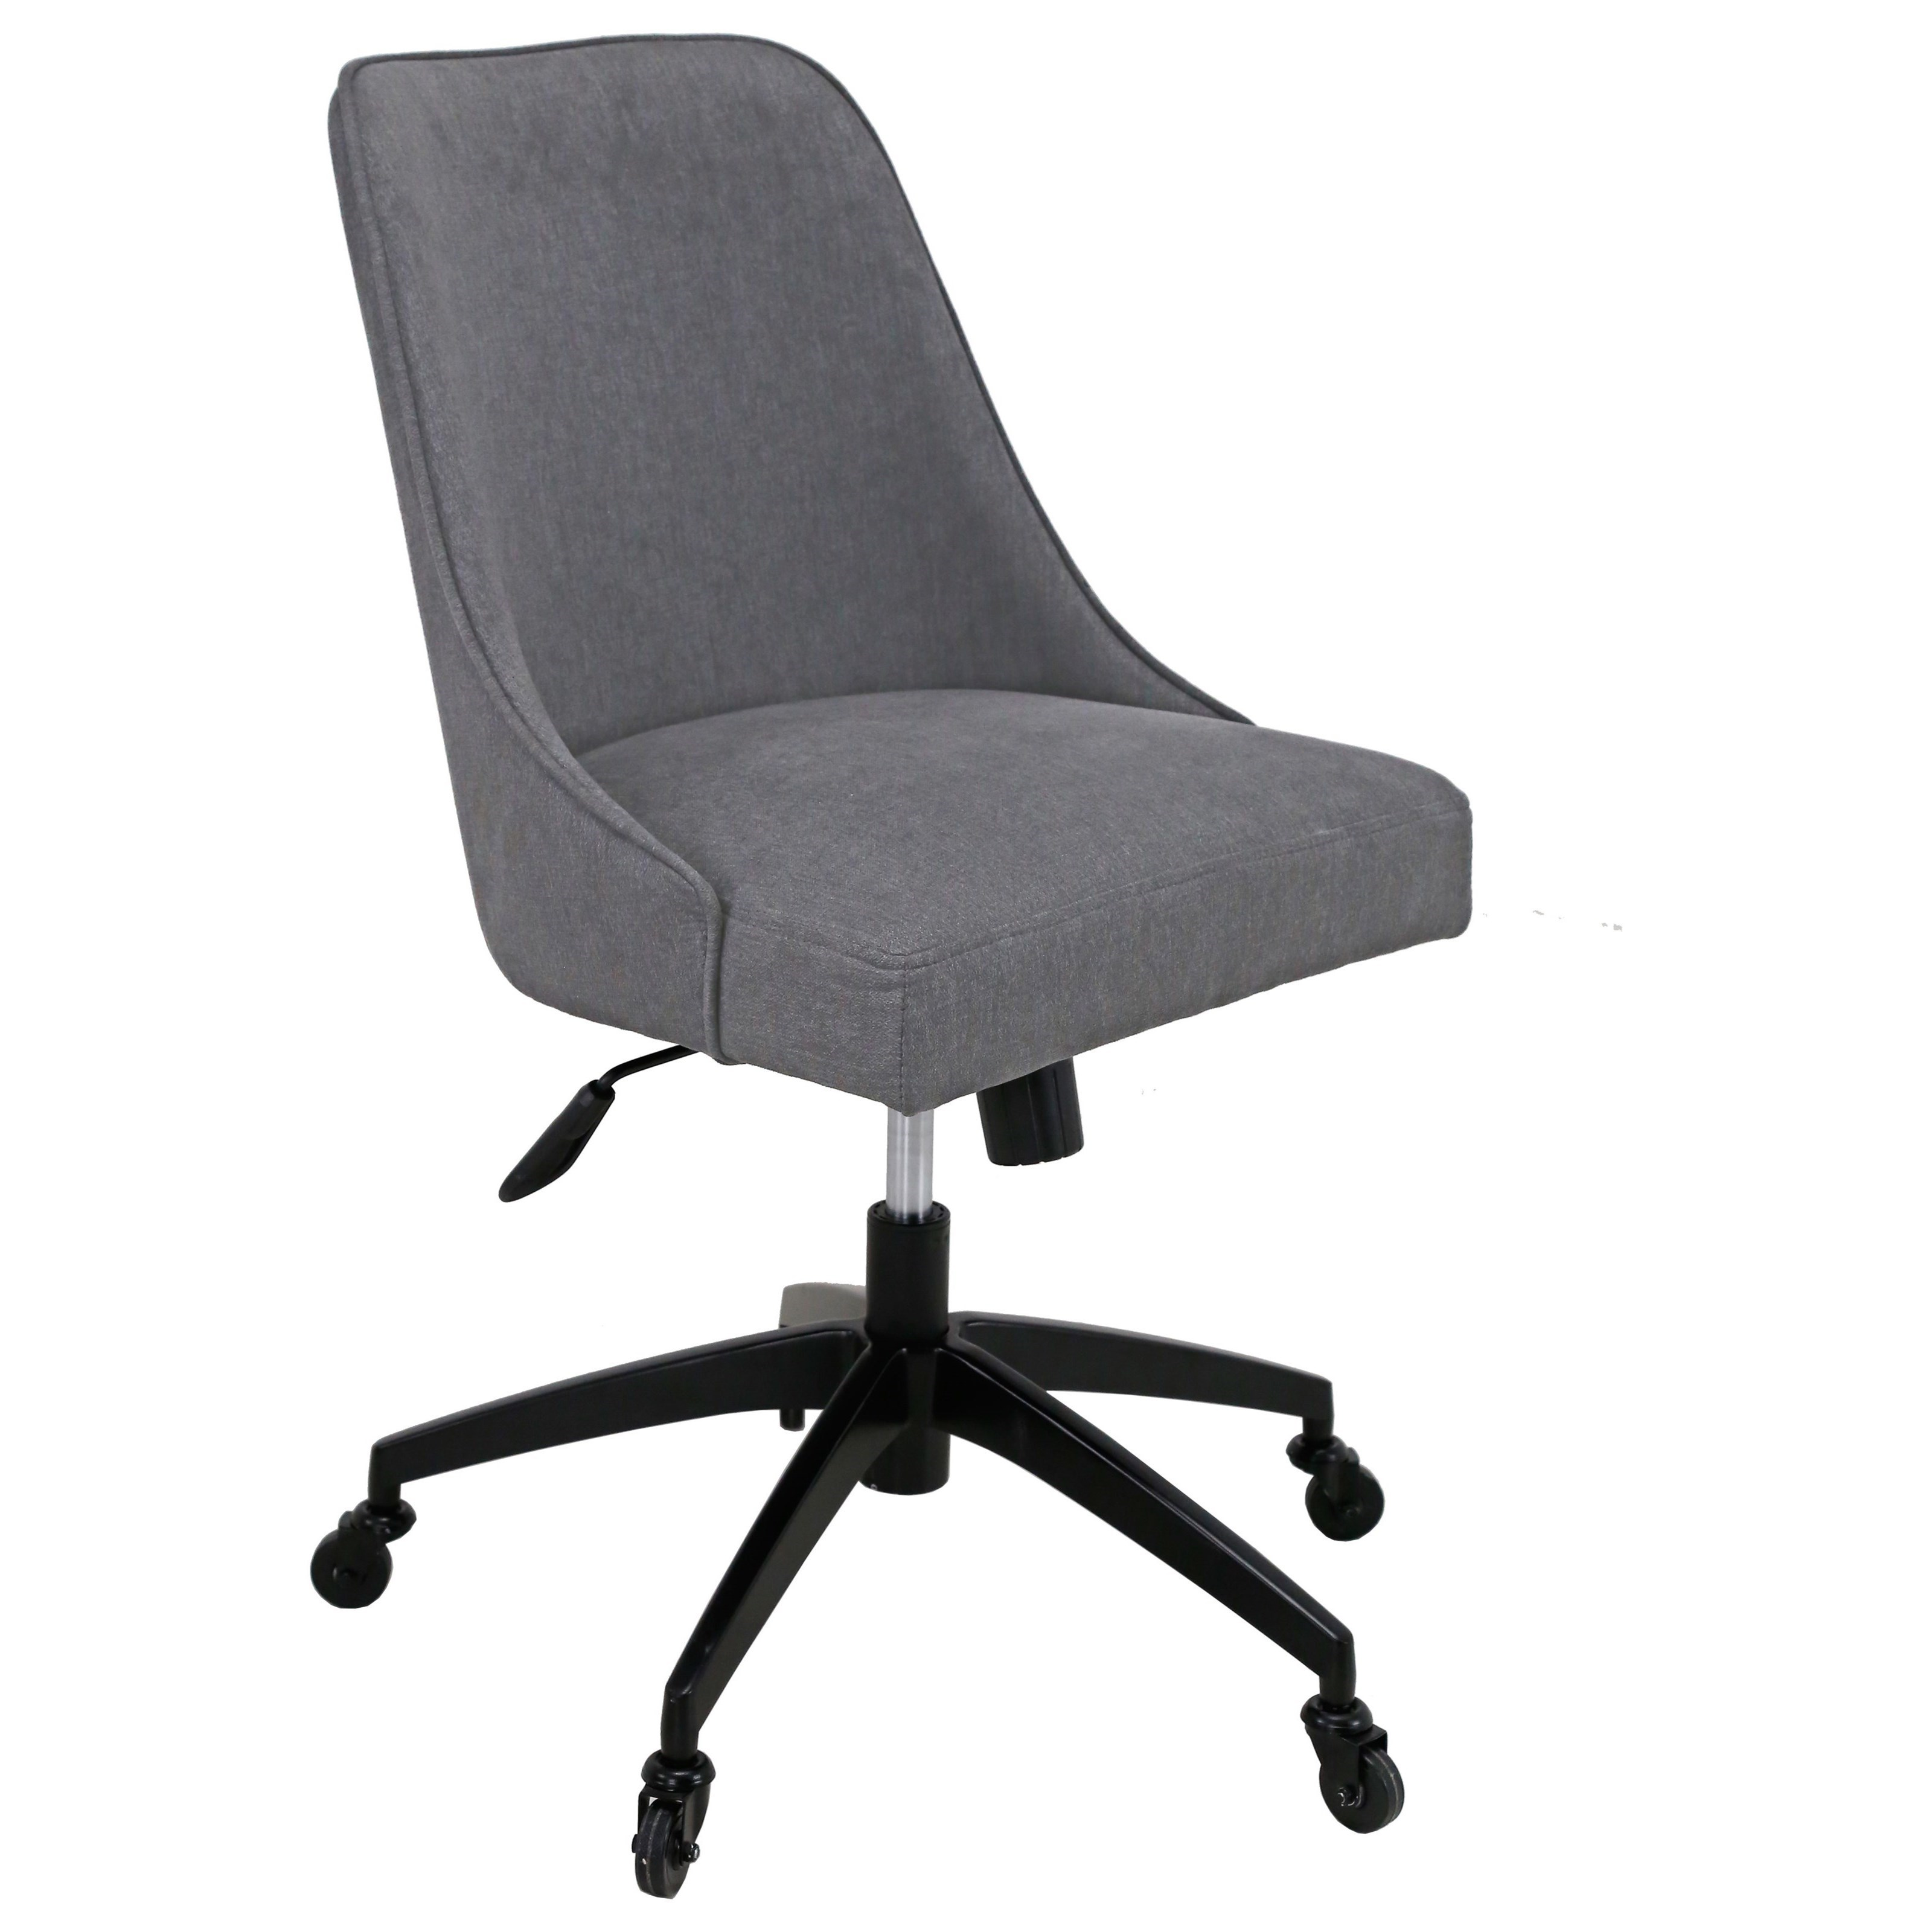 Kinsley Swivel Upholstered Desk Chair by Steve Silver at Northeast Factory Direct